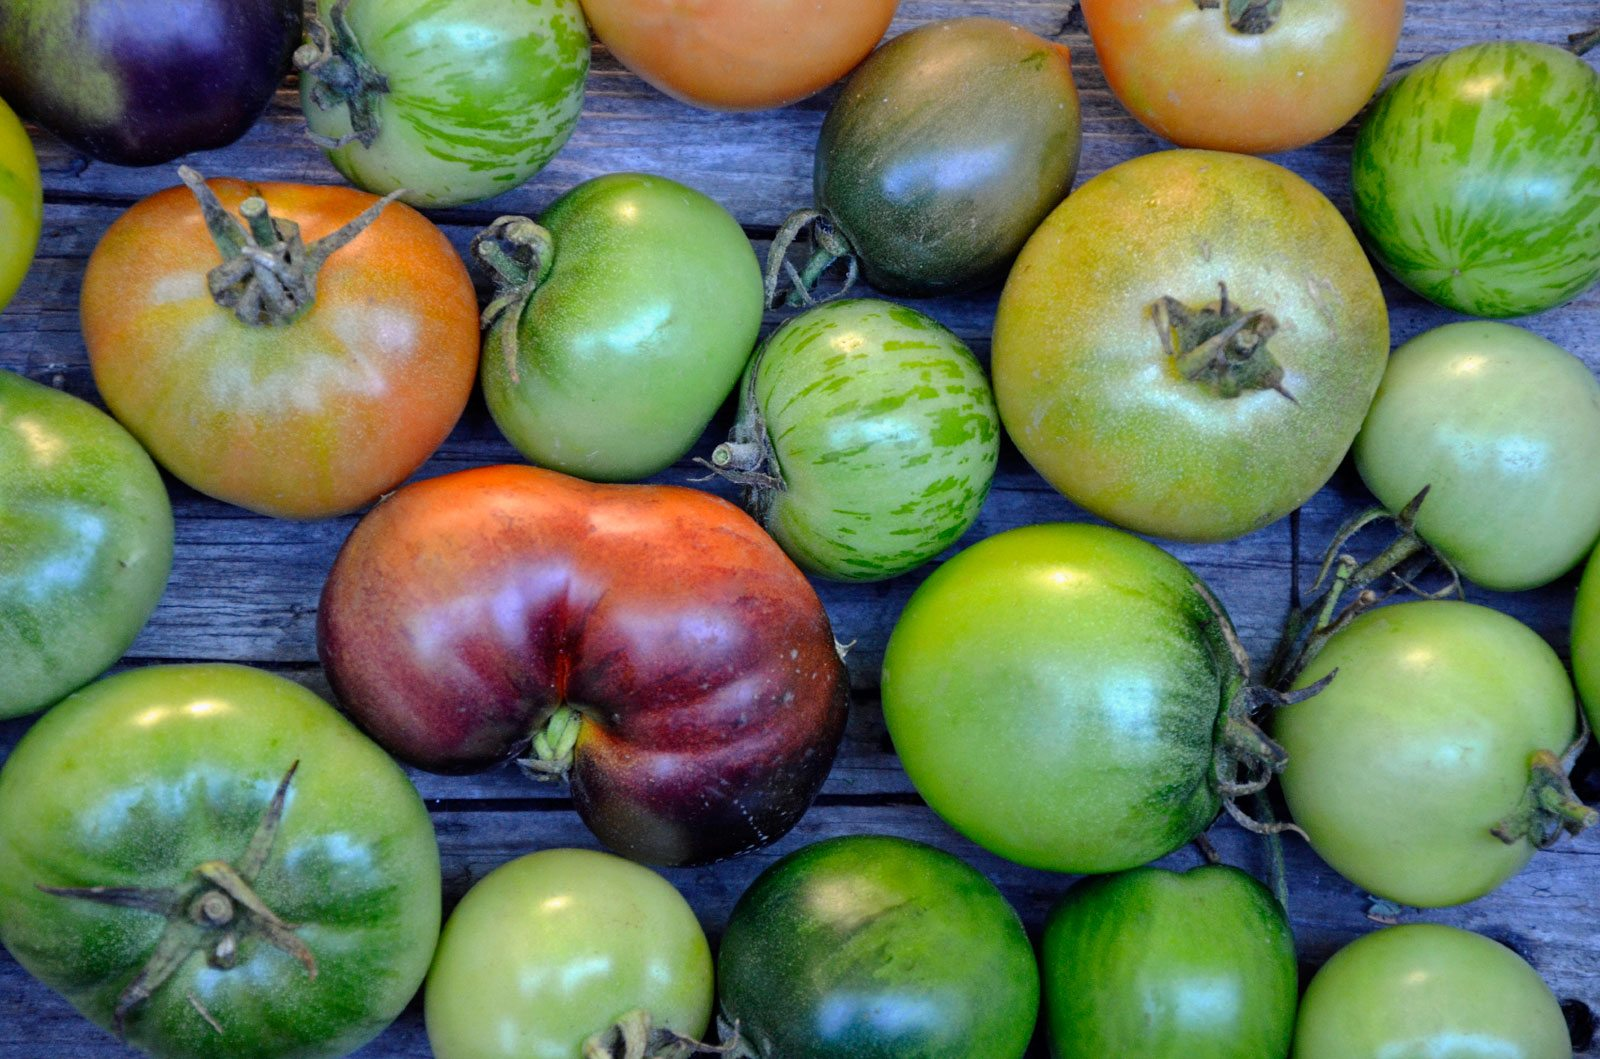 Turning Green Tomatoes Red